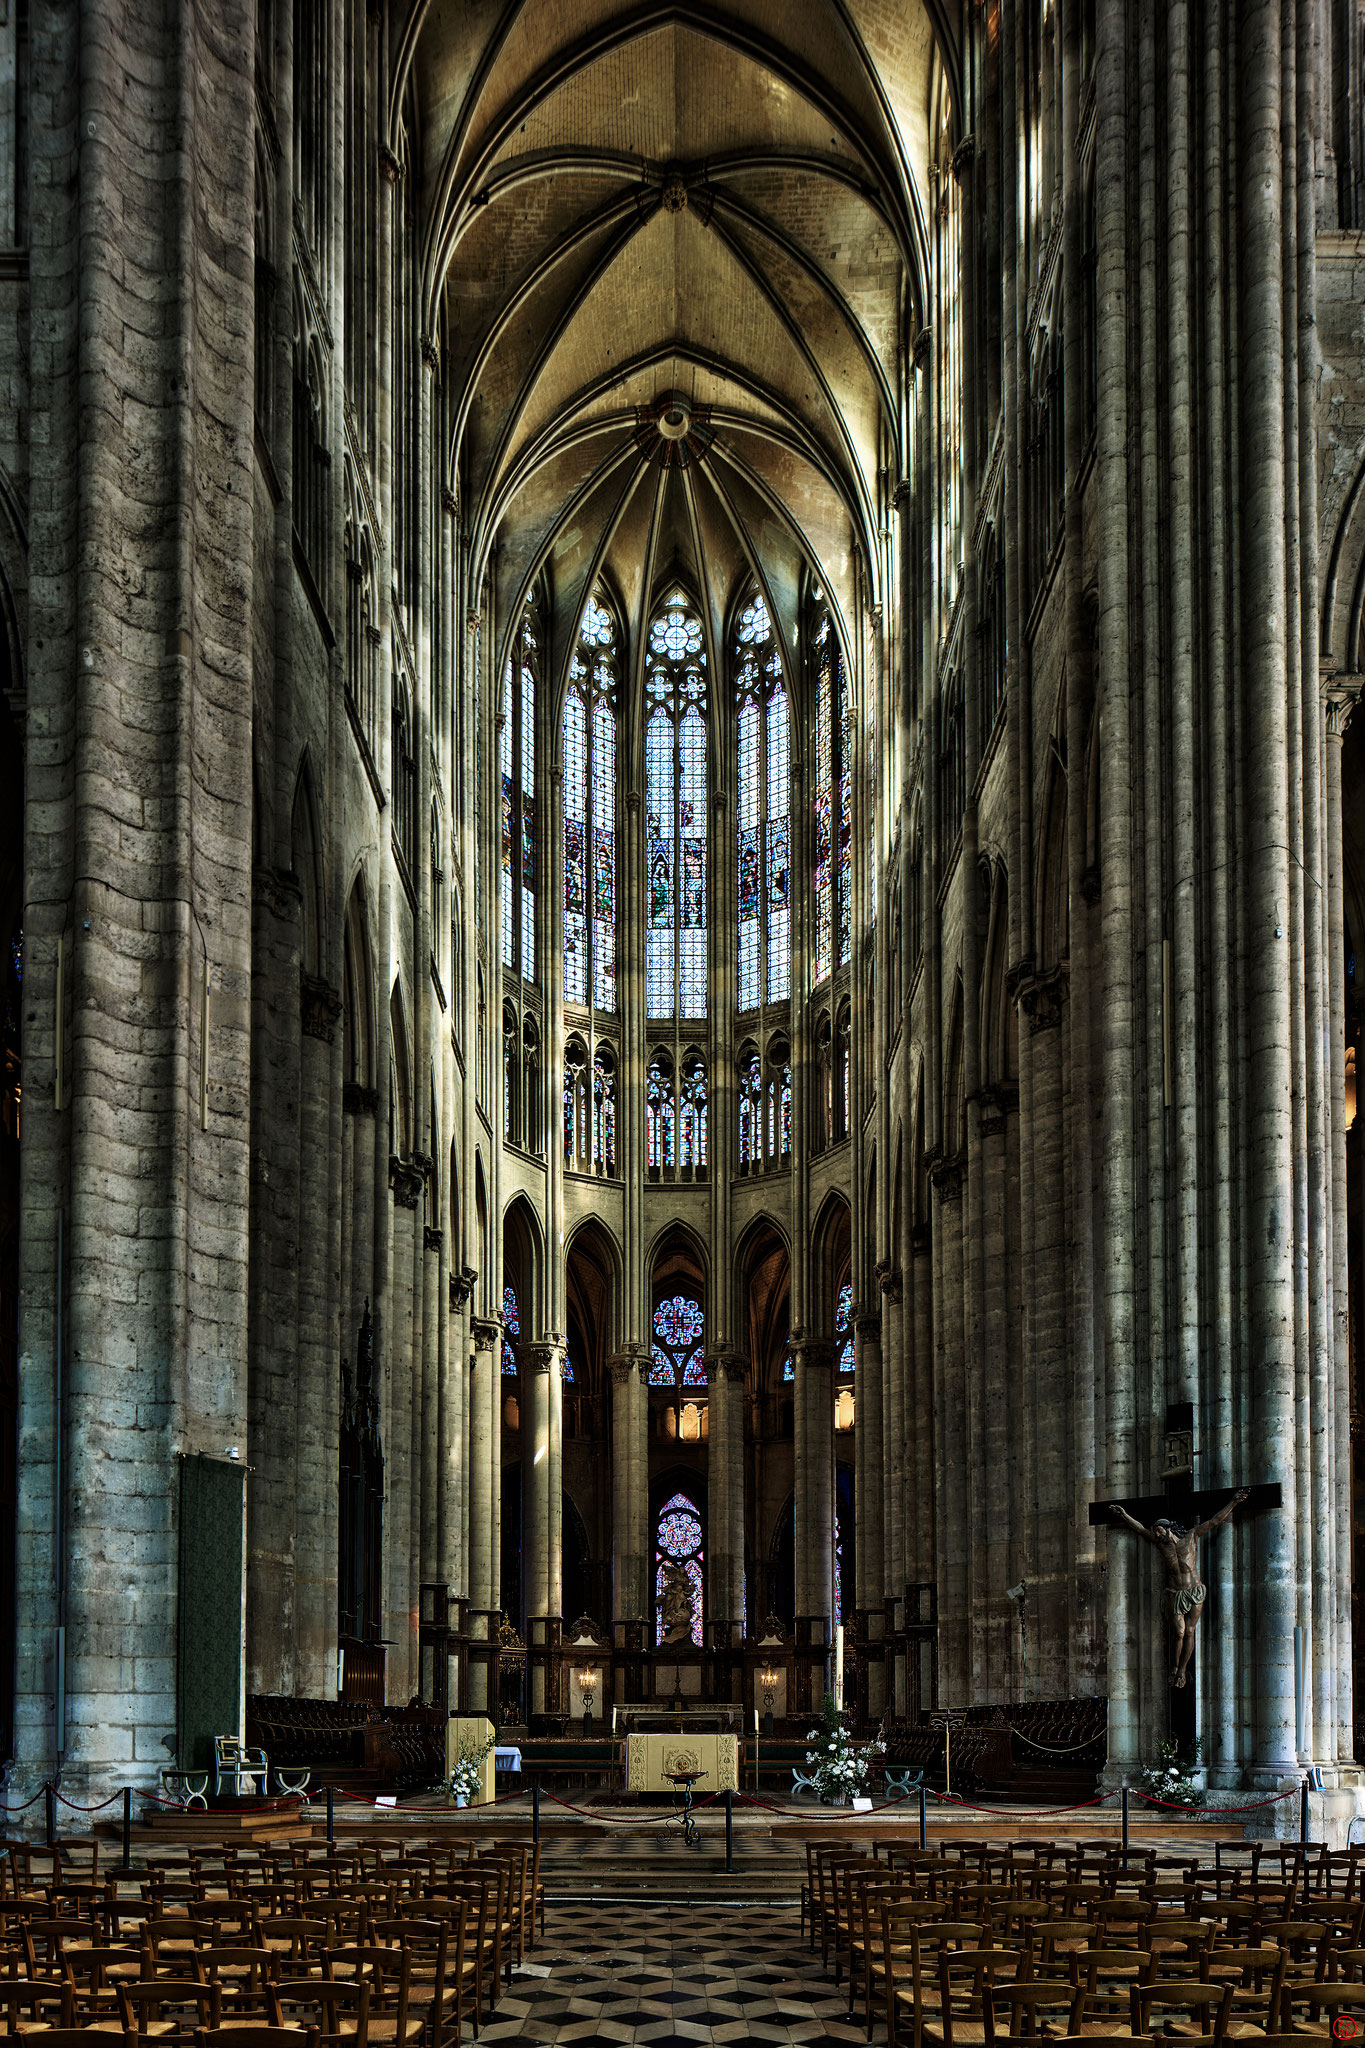 Cathédrale Saint-Pierre, Beauvais, France (2018)